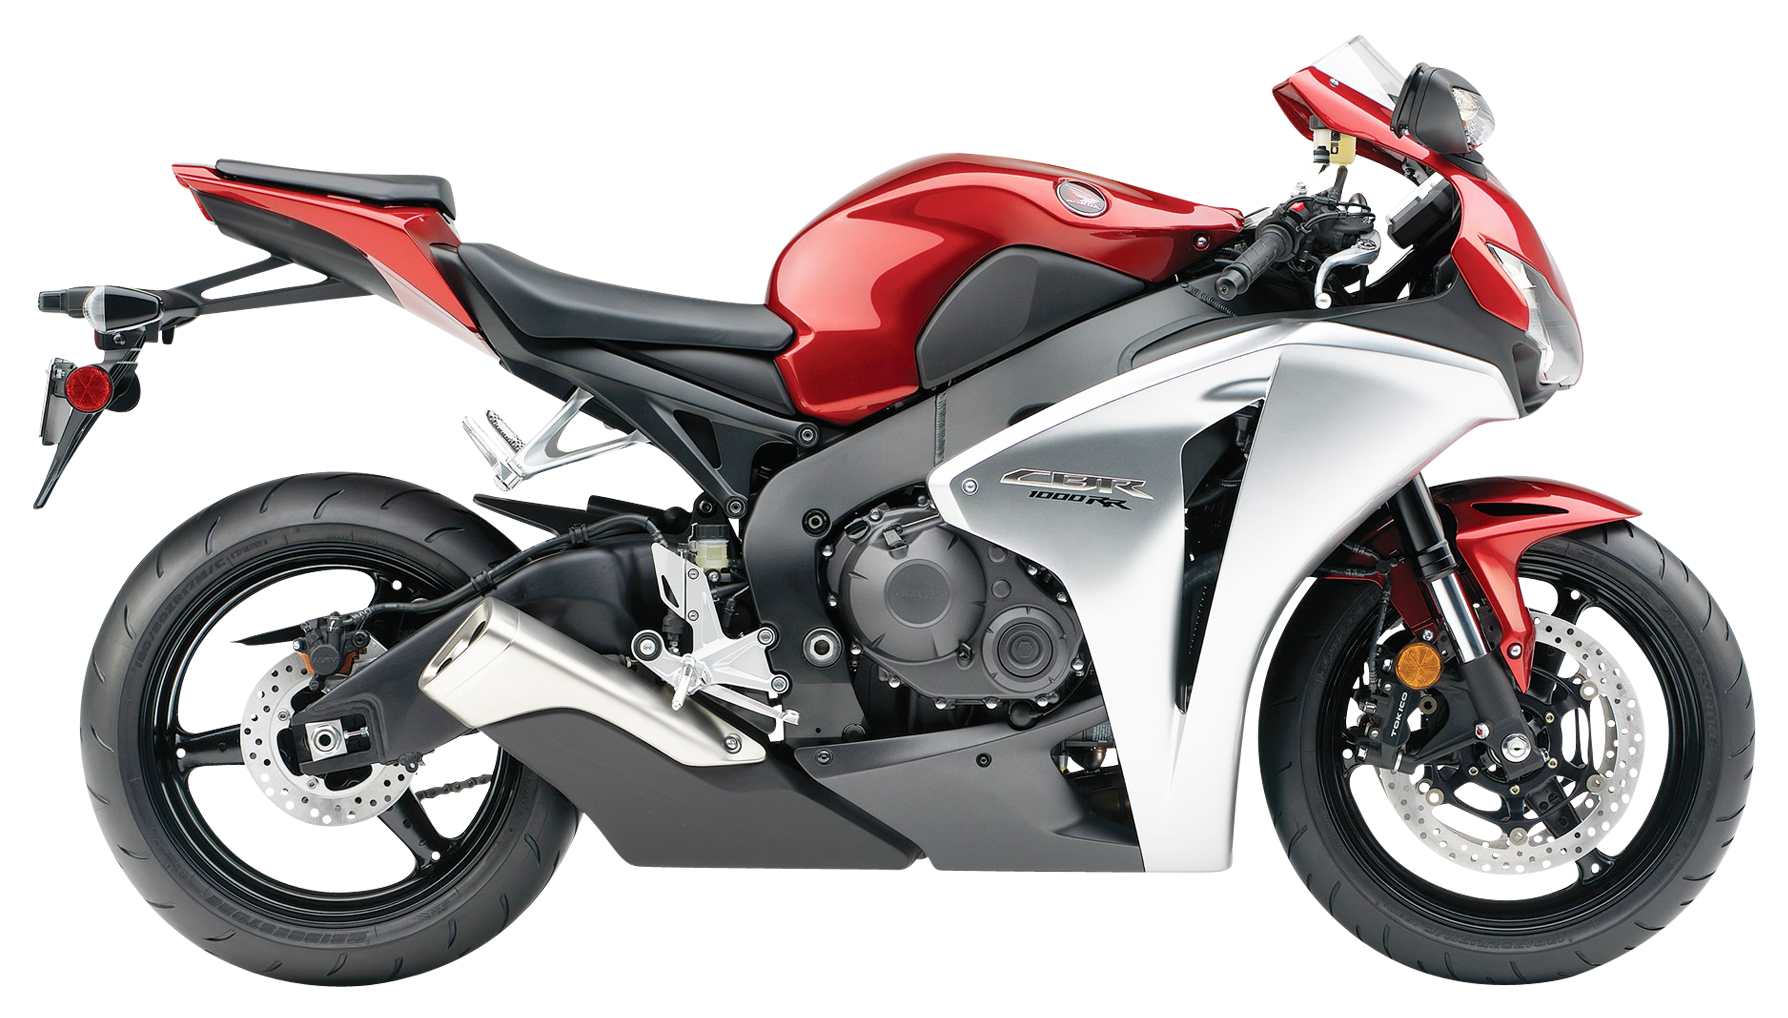 Motorcycle clipart motorcycle honda. Cbr rr red bike